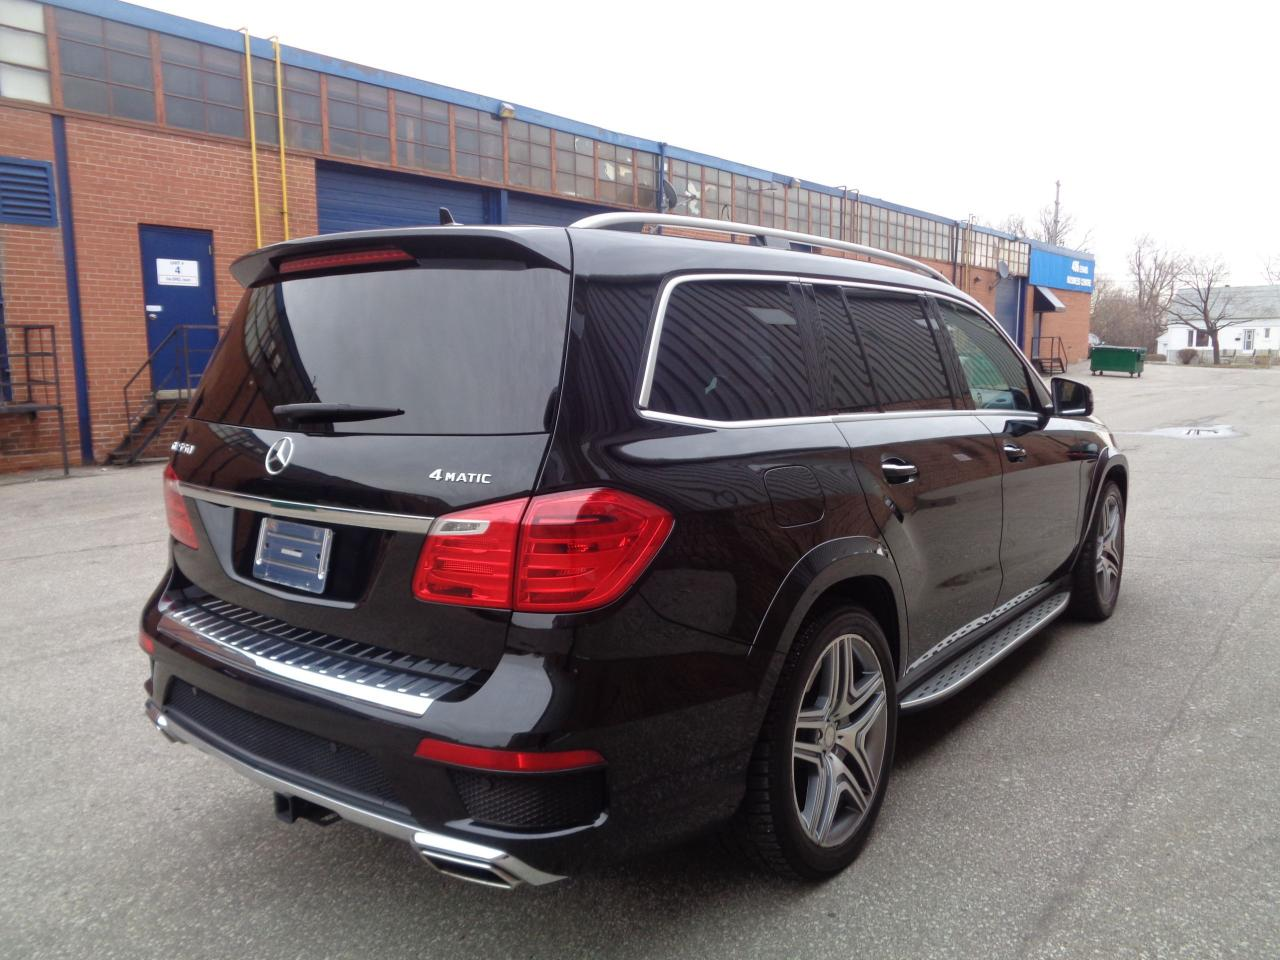 2015 Mercedes-Benz GL550